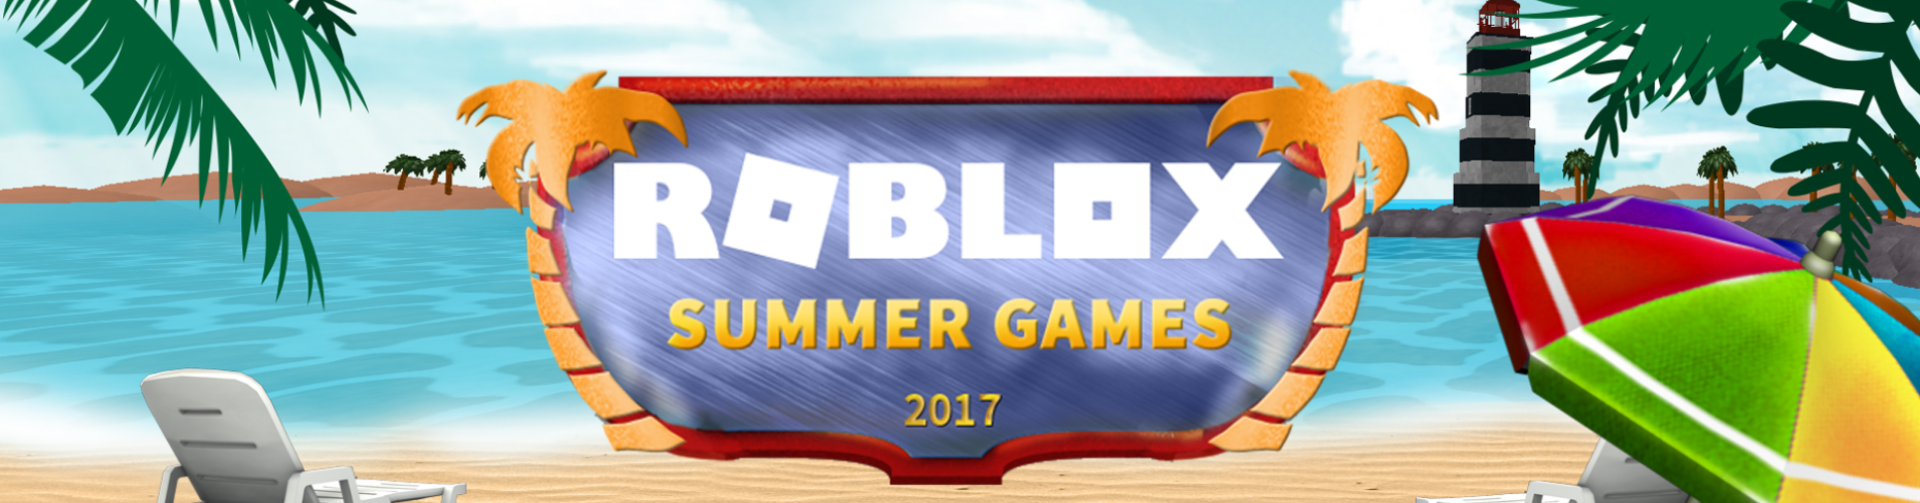 free robux no human verification or survey or download